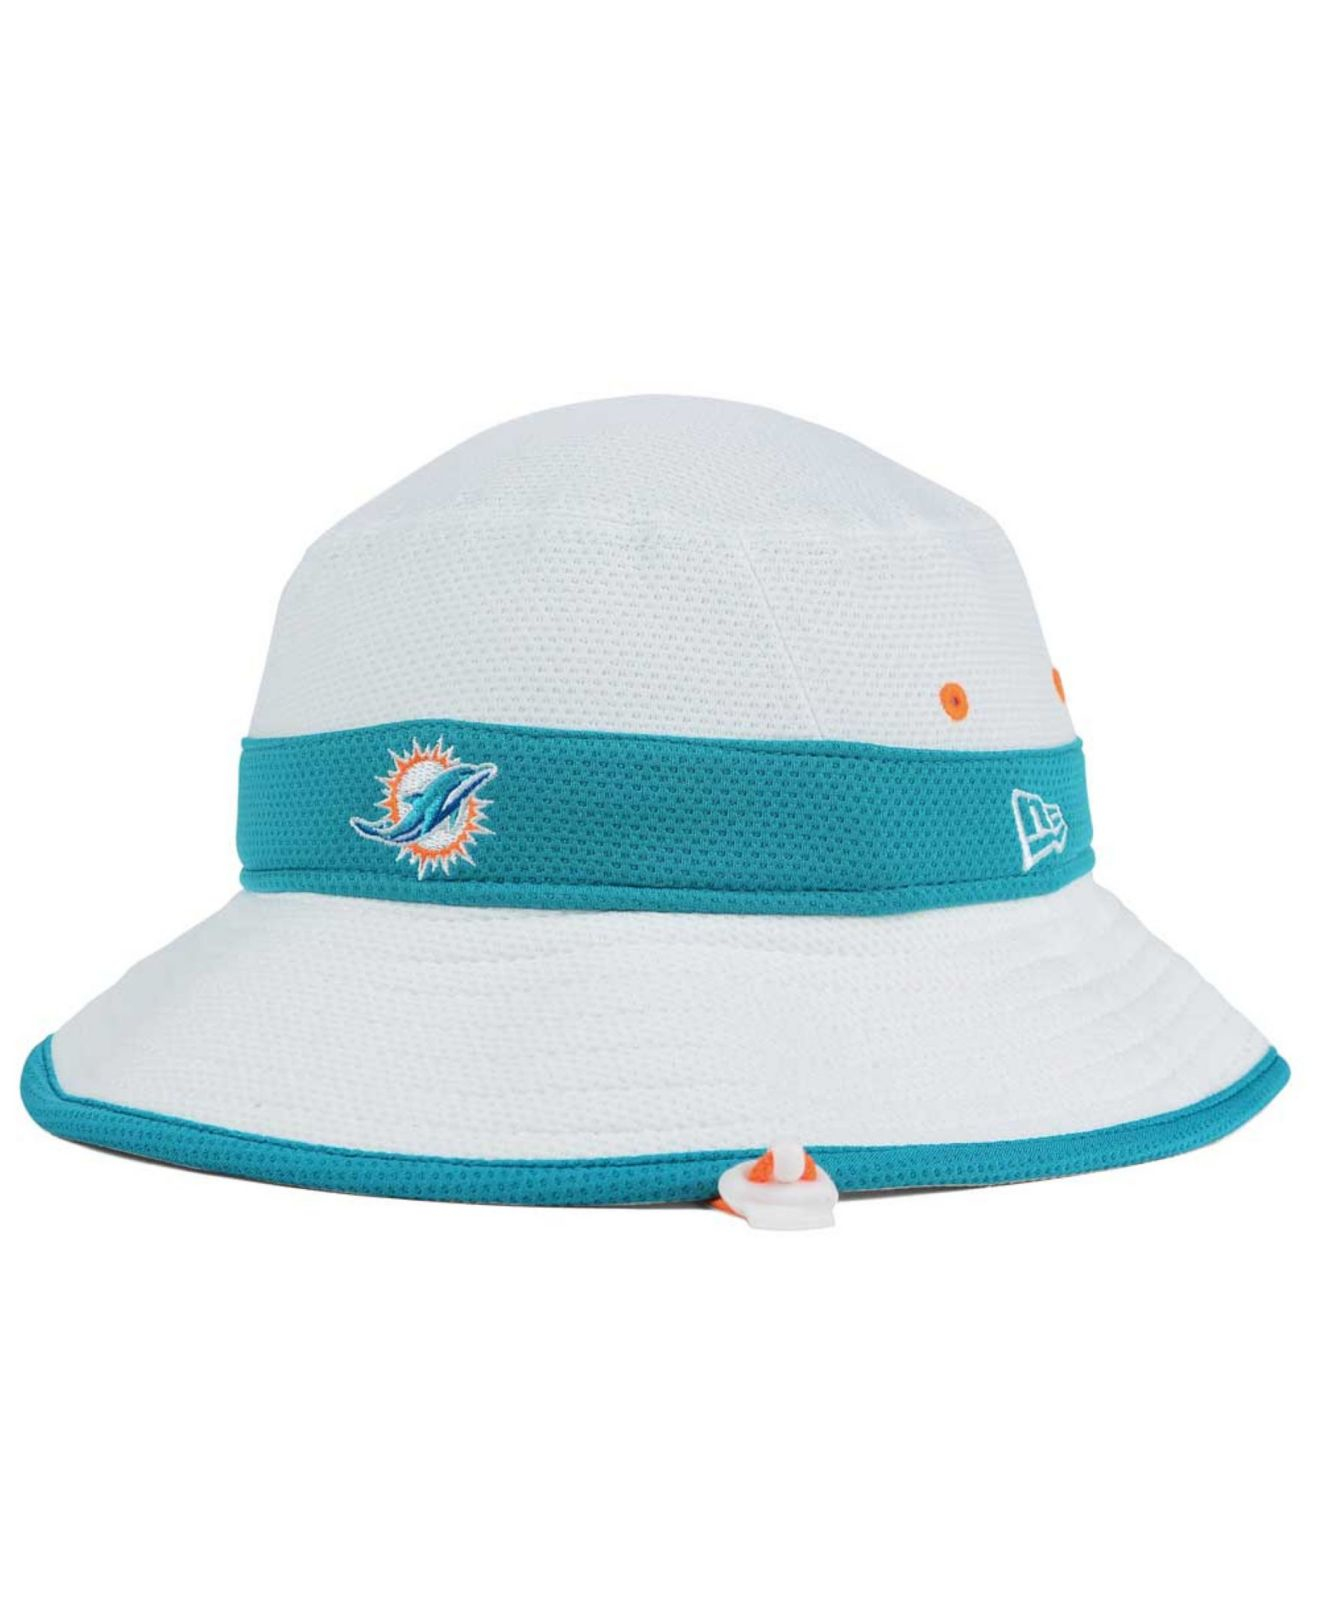 7ee45ff1ea4092 KTZ Miami Dolphins Training Camp Official Bucket Hat in White for ...